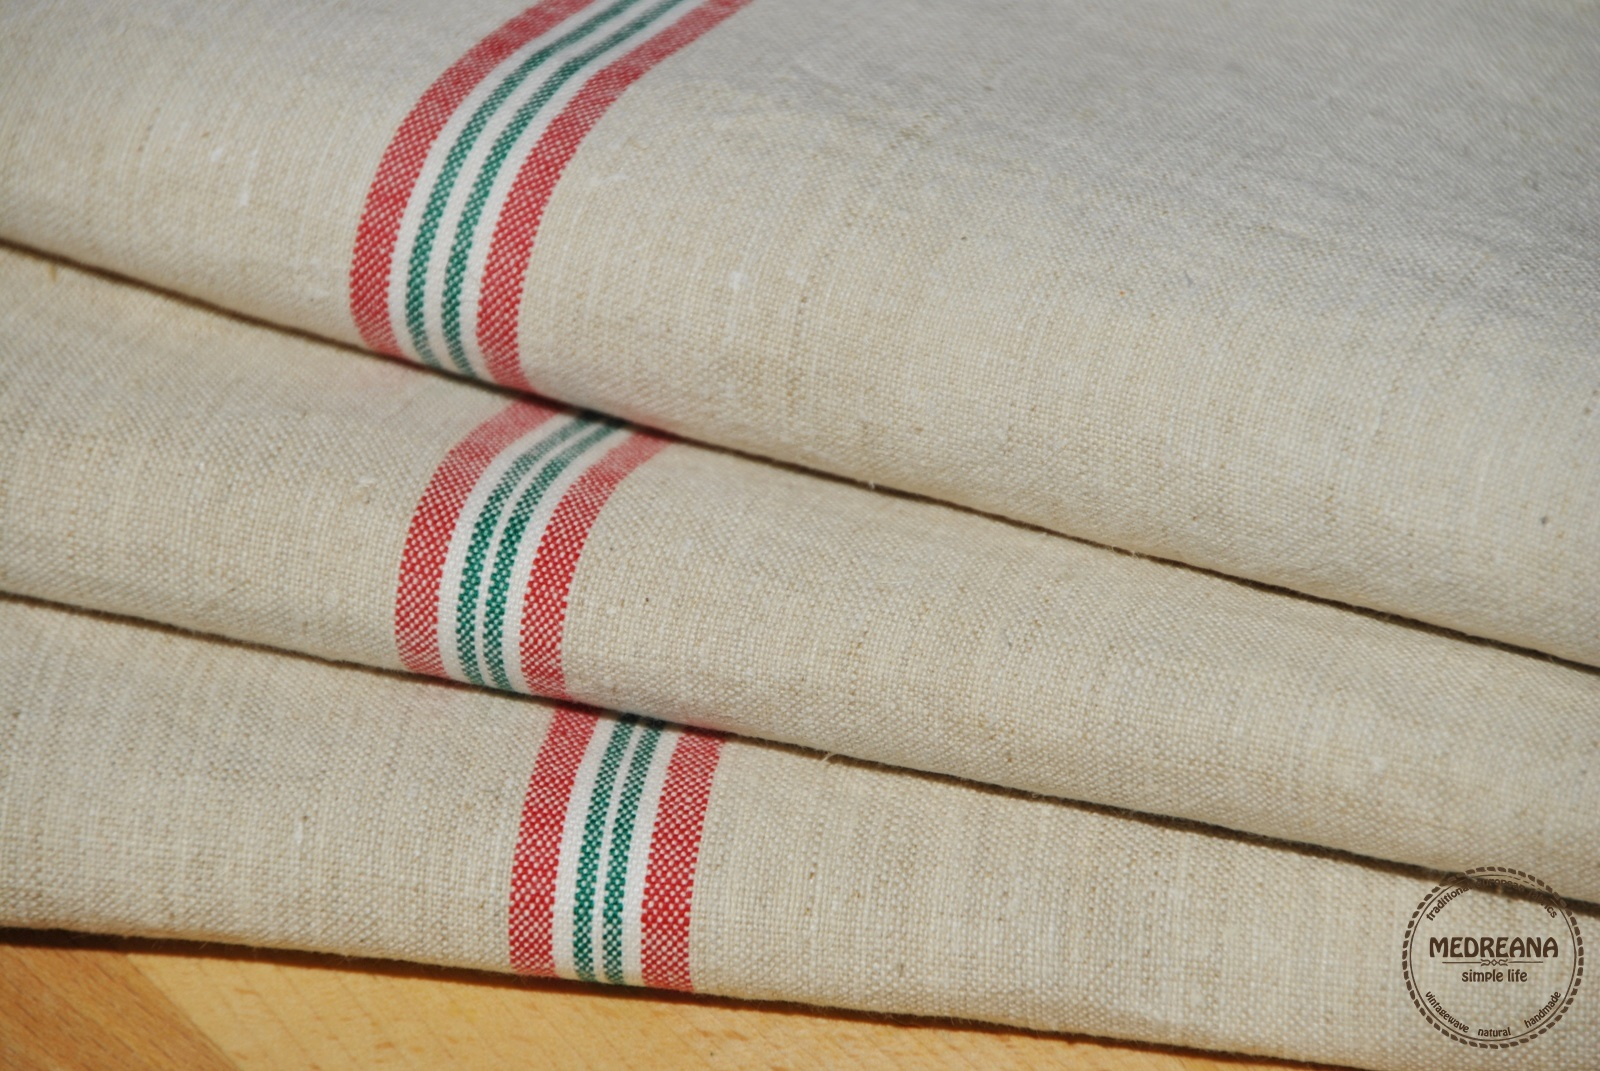 Medreana Set of 3 vintage kitchen towels red and green